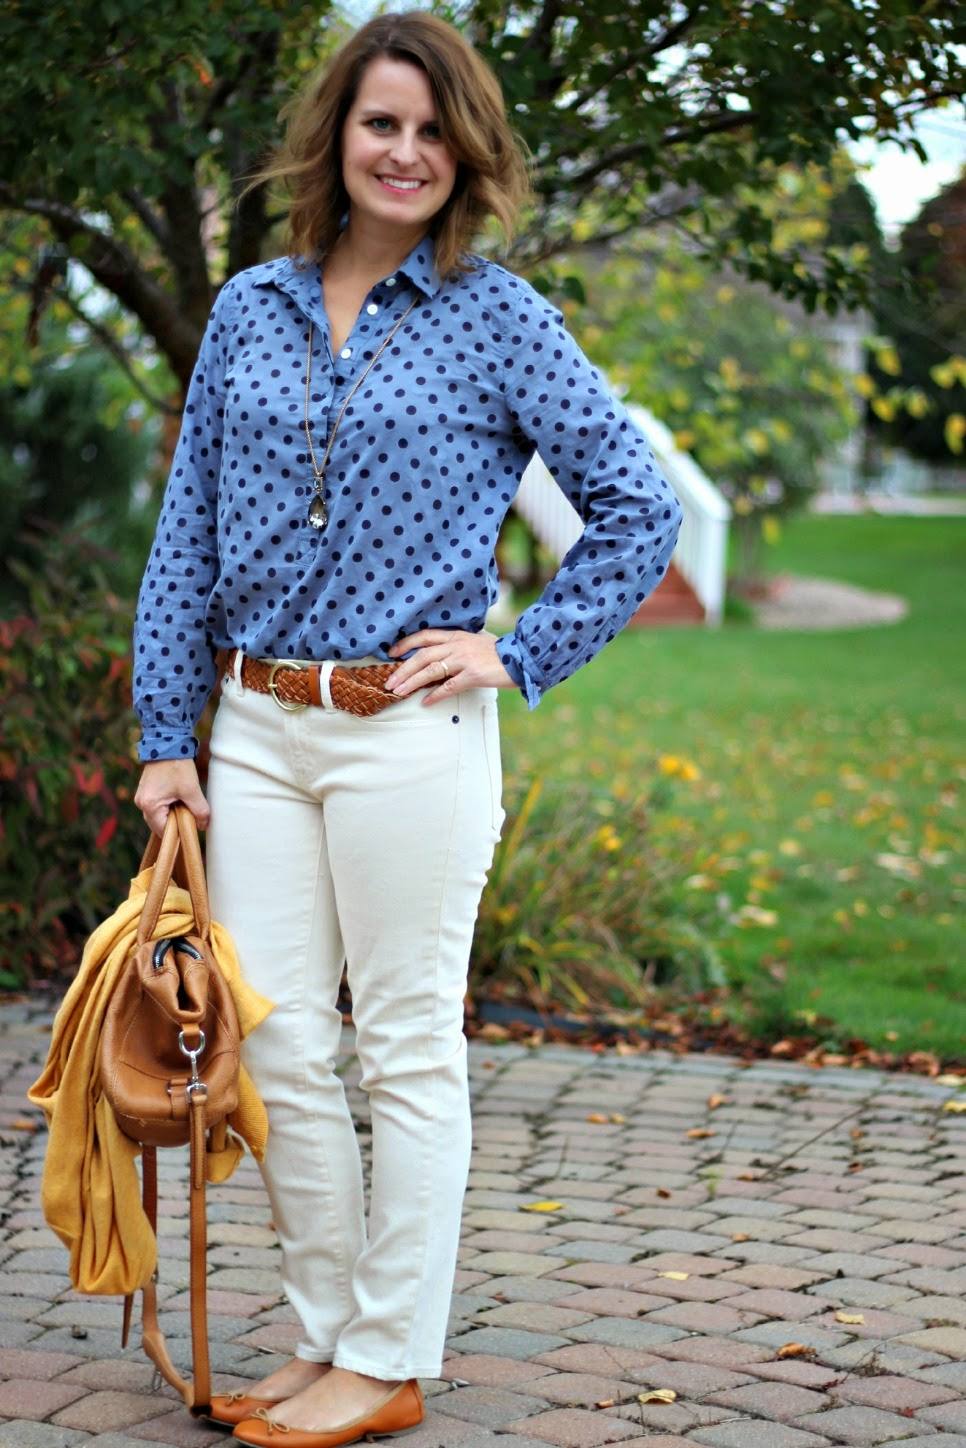 J Crew Factory polka dot popover, cream jeans, cogac belt, flats, purse, fall outfit